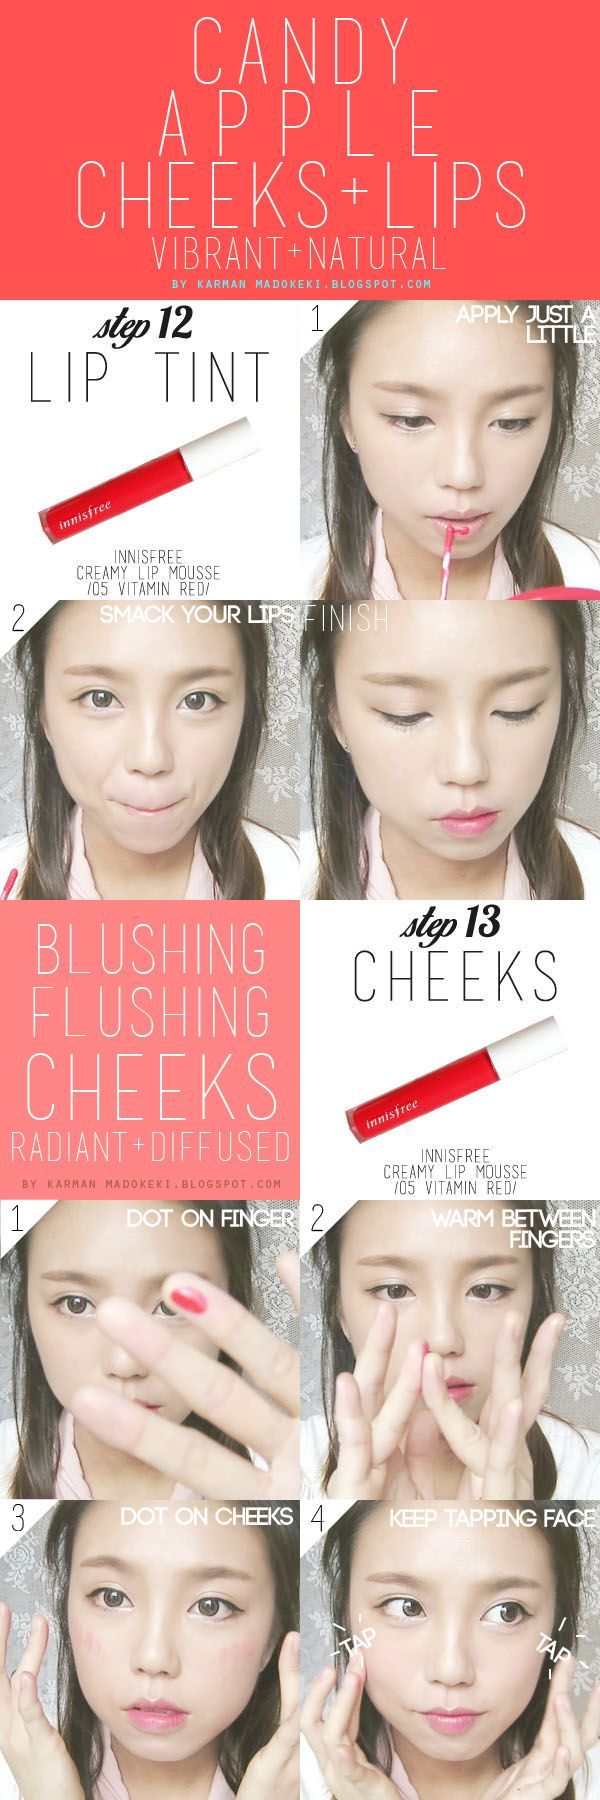 How To : Korean Ulzzang/Uljjang Make Up (Ft. Aegyo Sal) | MADOKEKI makeup reviews, tutorials, and beauty